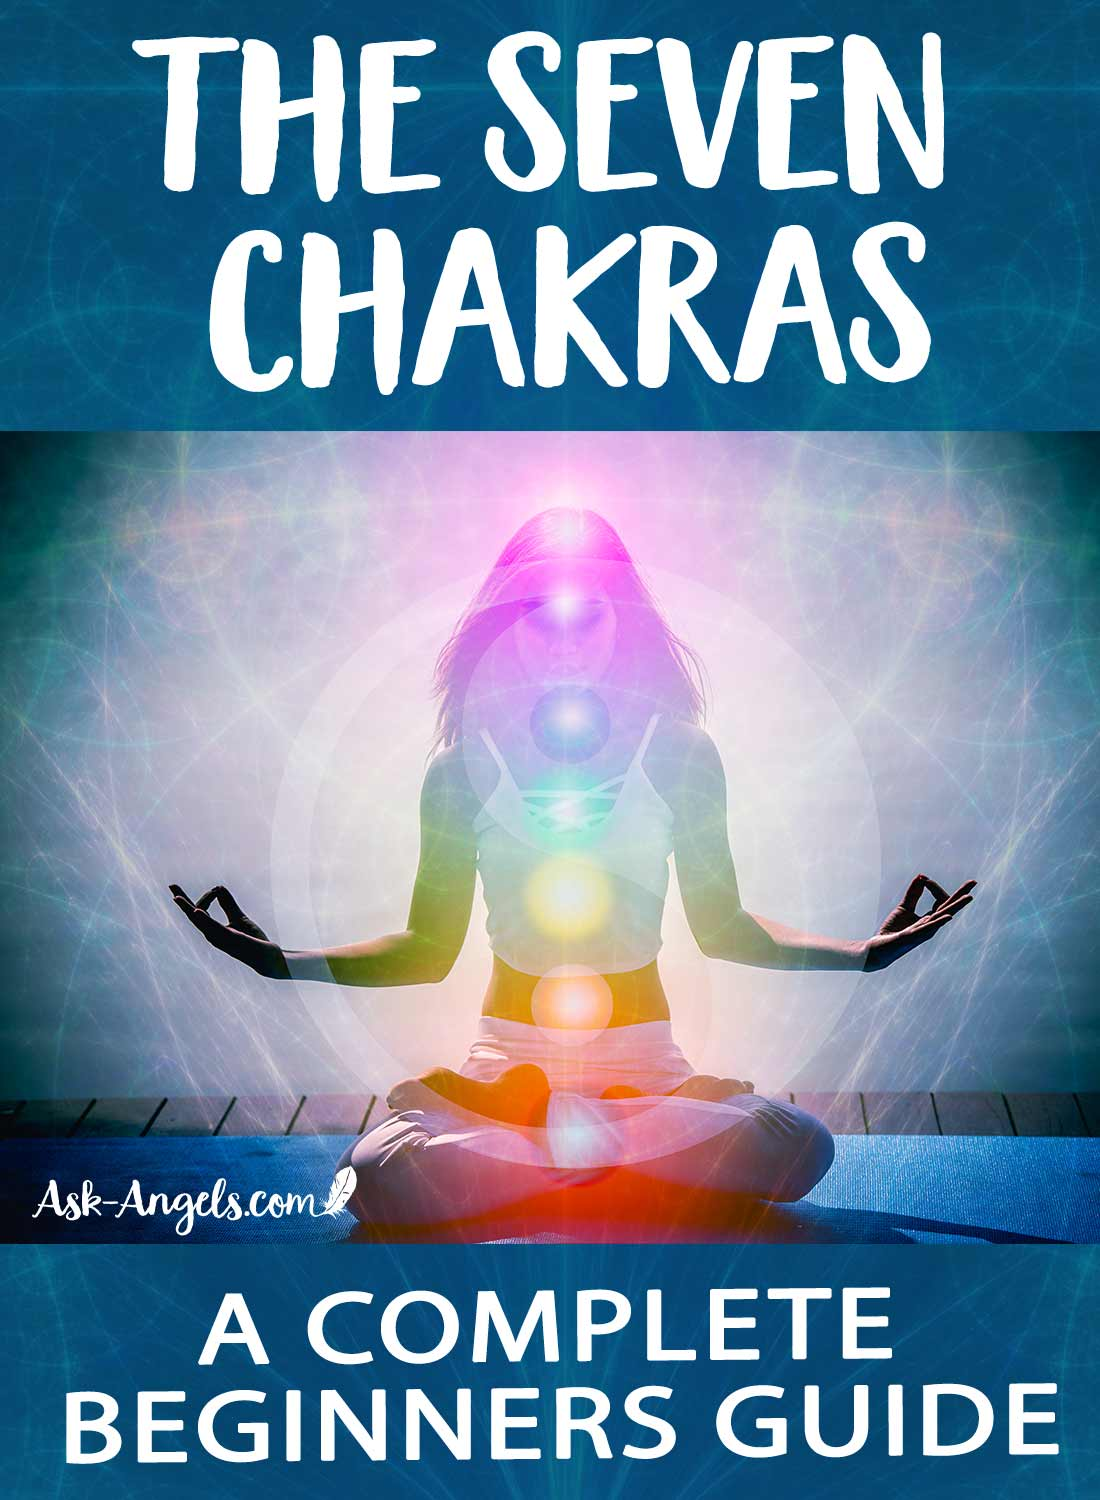 The 7 Chakras A Complete Beginners Guide